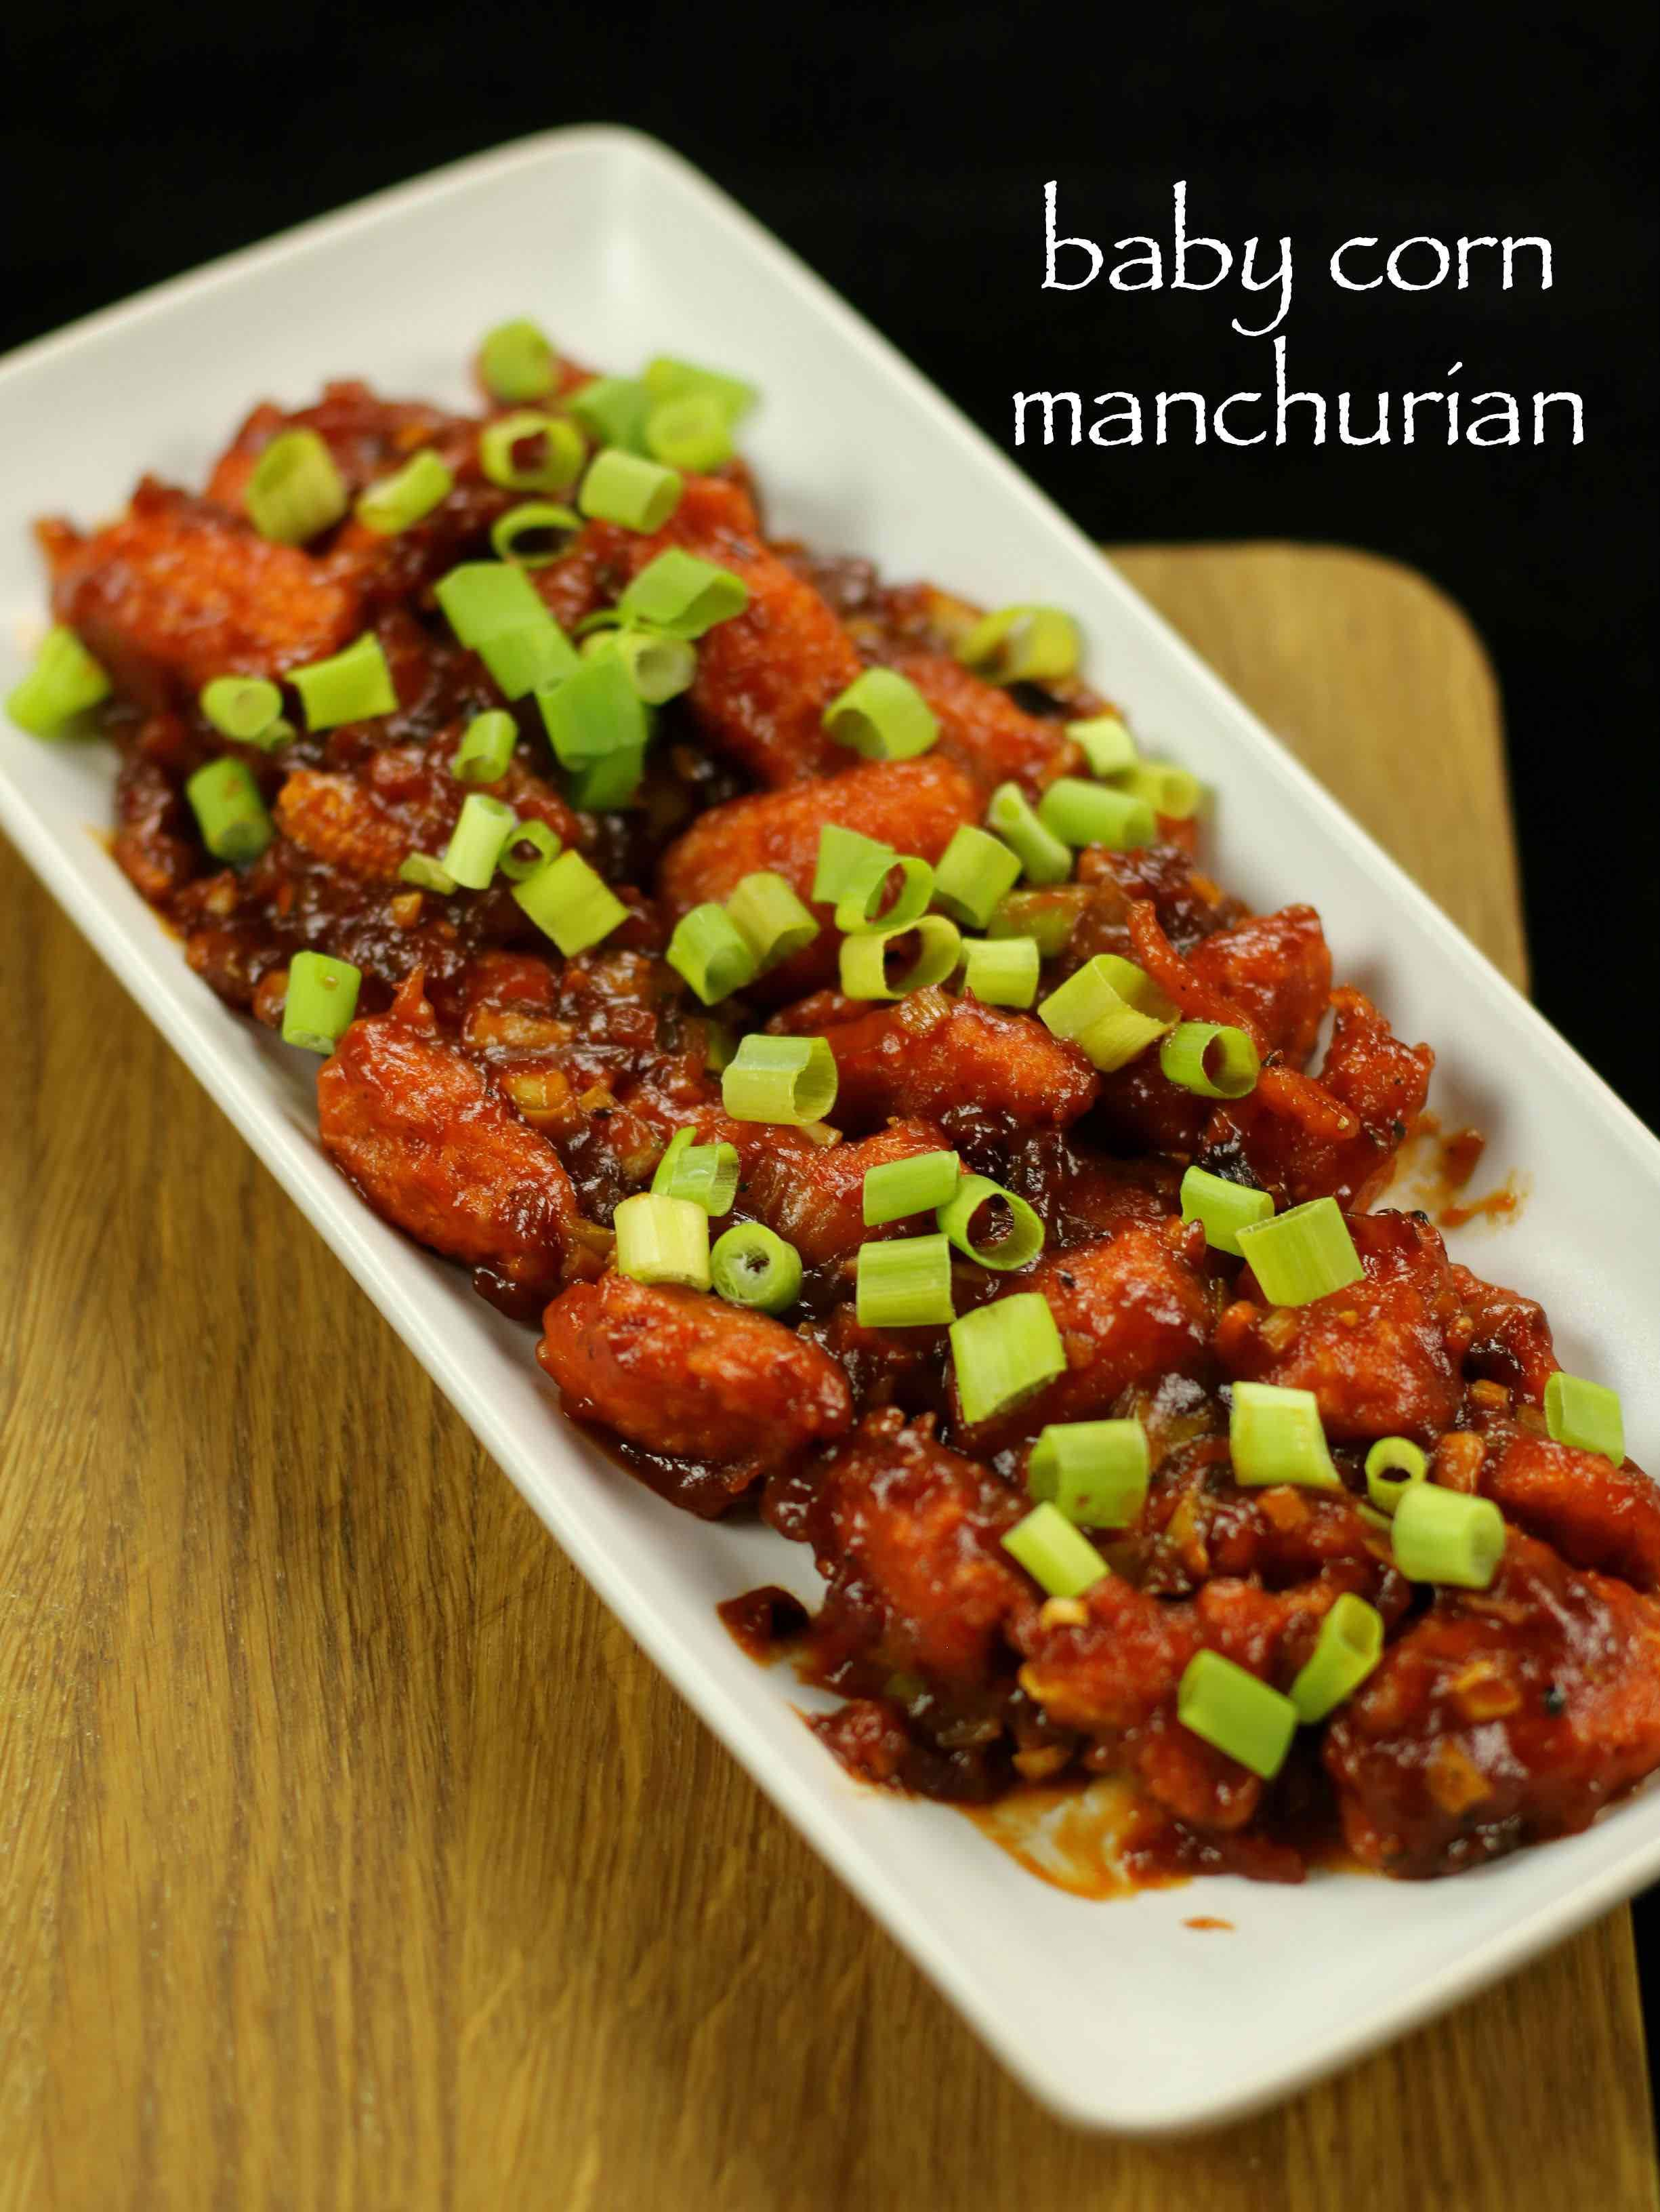 Baby corn manchurian recipe baby corn manchurian dry recipe http baby corn manchurian recipe with step by step photovideo recipe basically an indo chinese street food recipe prepared with manchurian and chilli sauce forumfinder Gallery